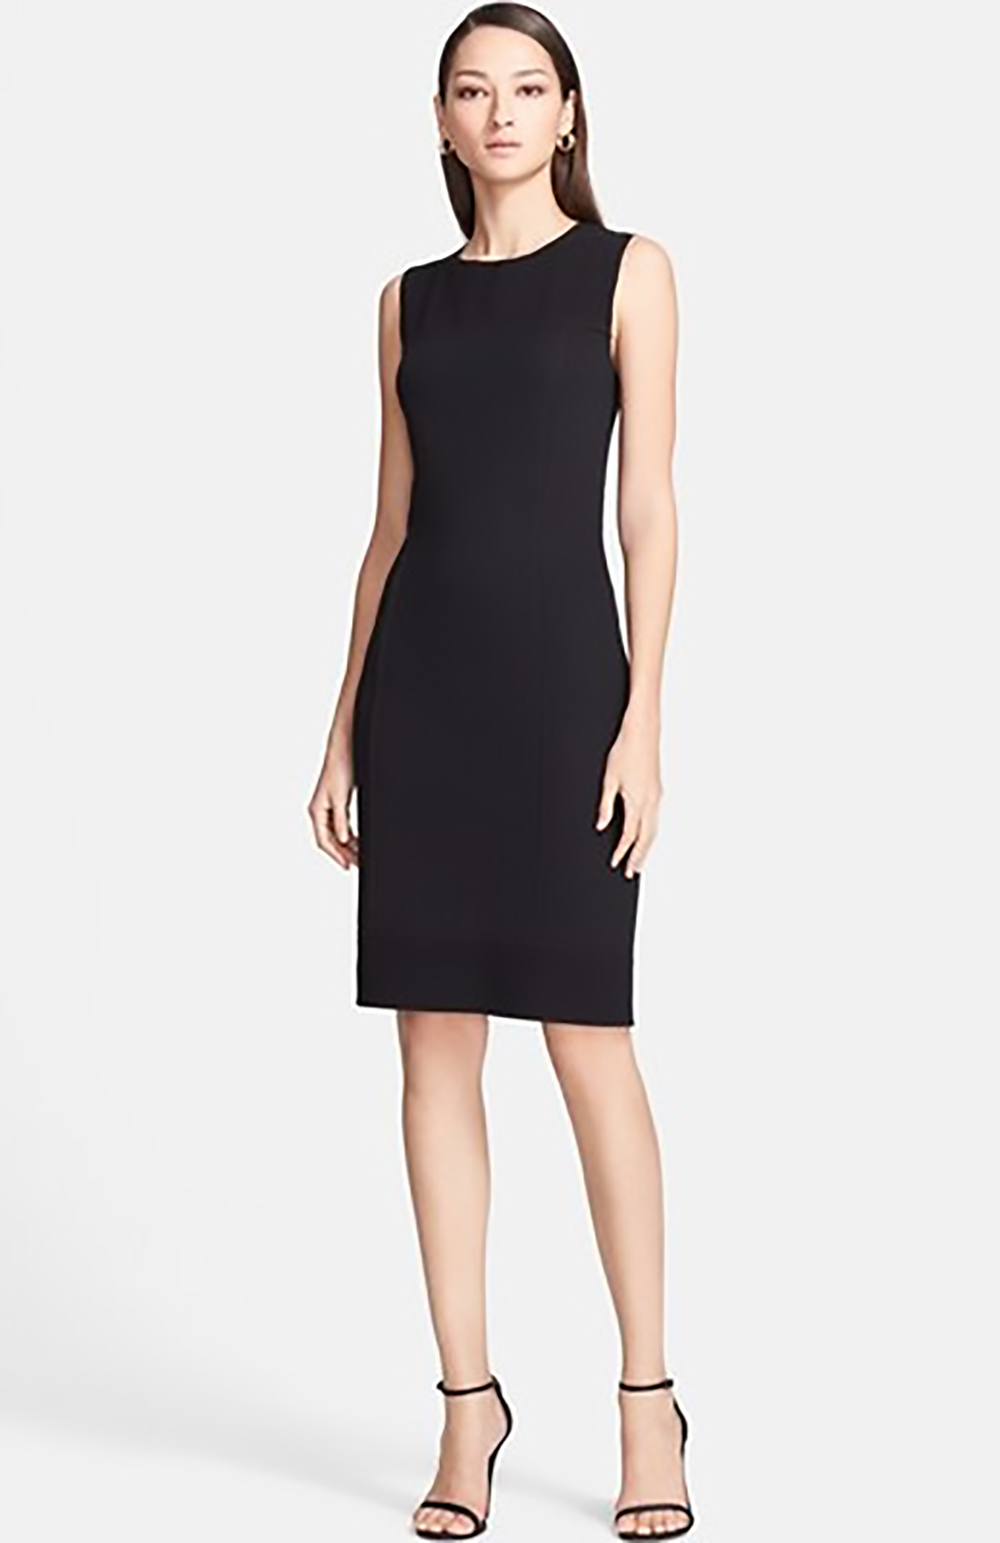 nordstrom st john collection milano pique knit dress with crepe marocain panels sheath dress 1500.jpg